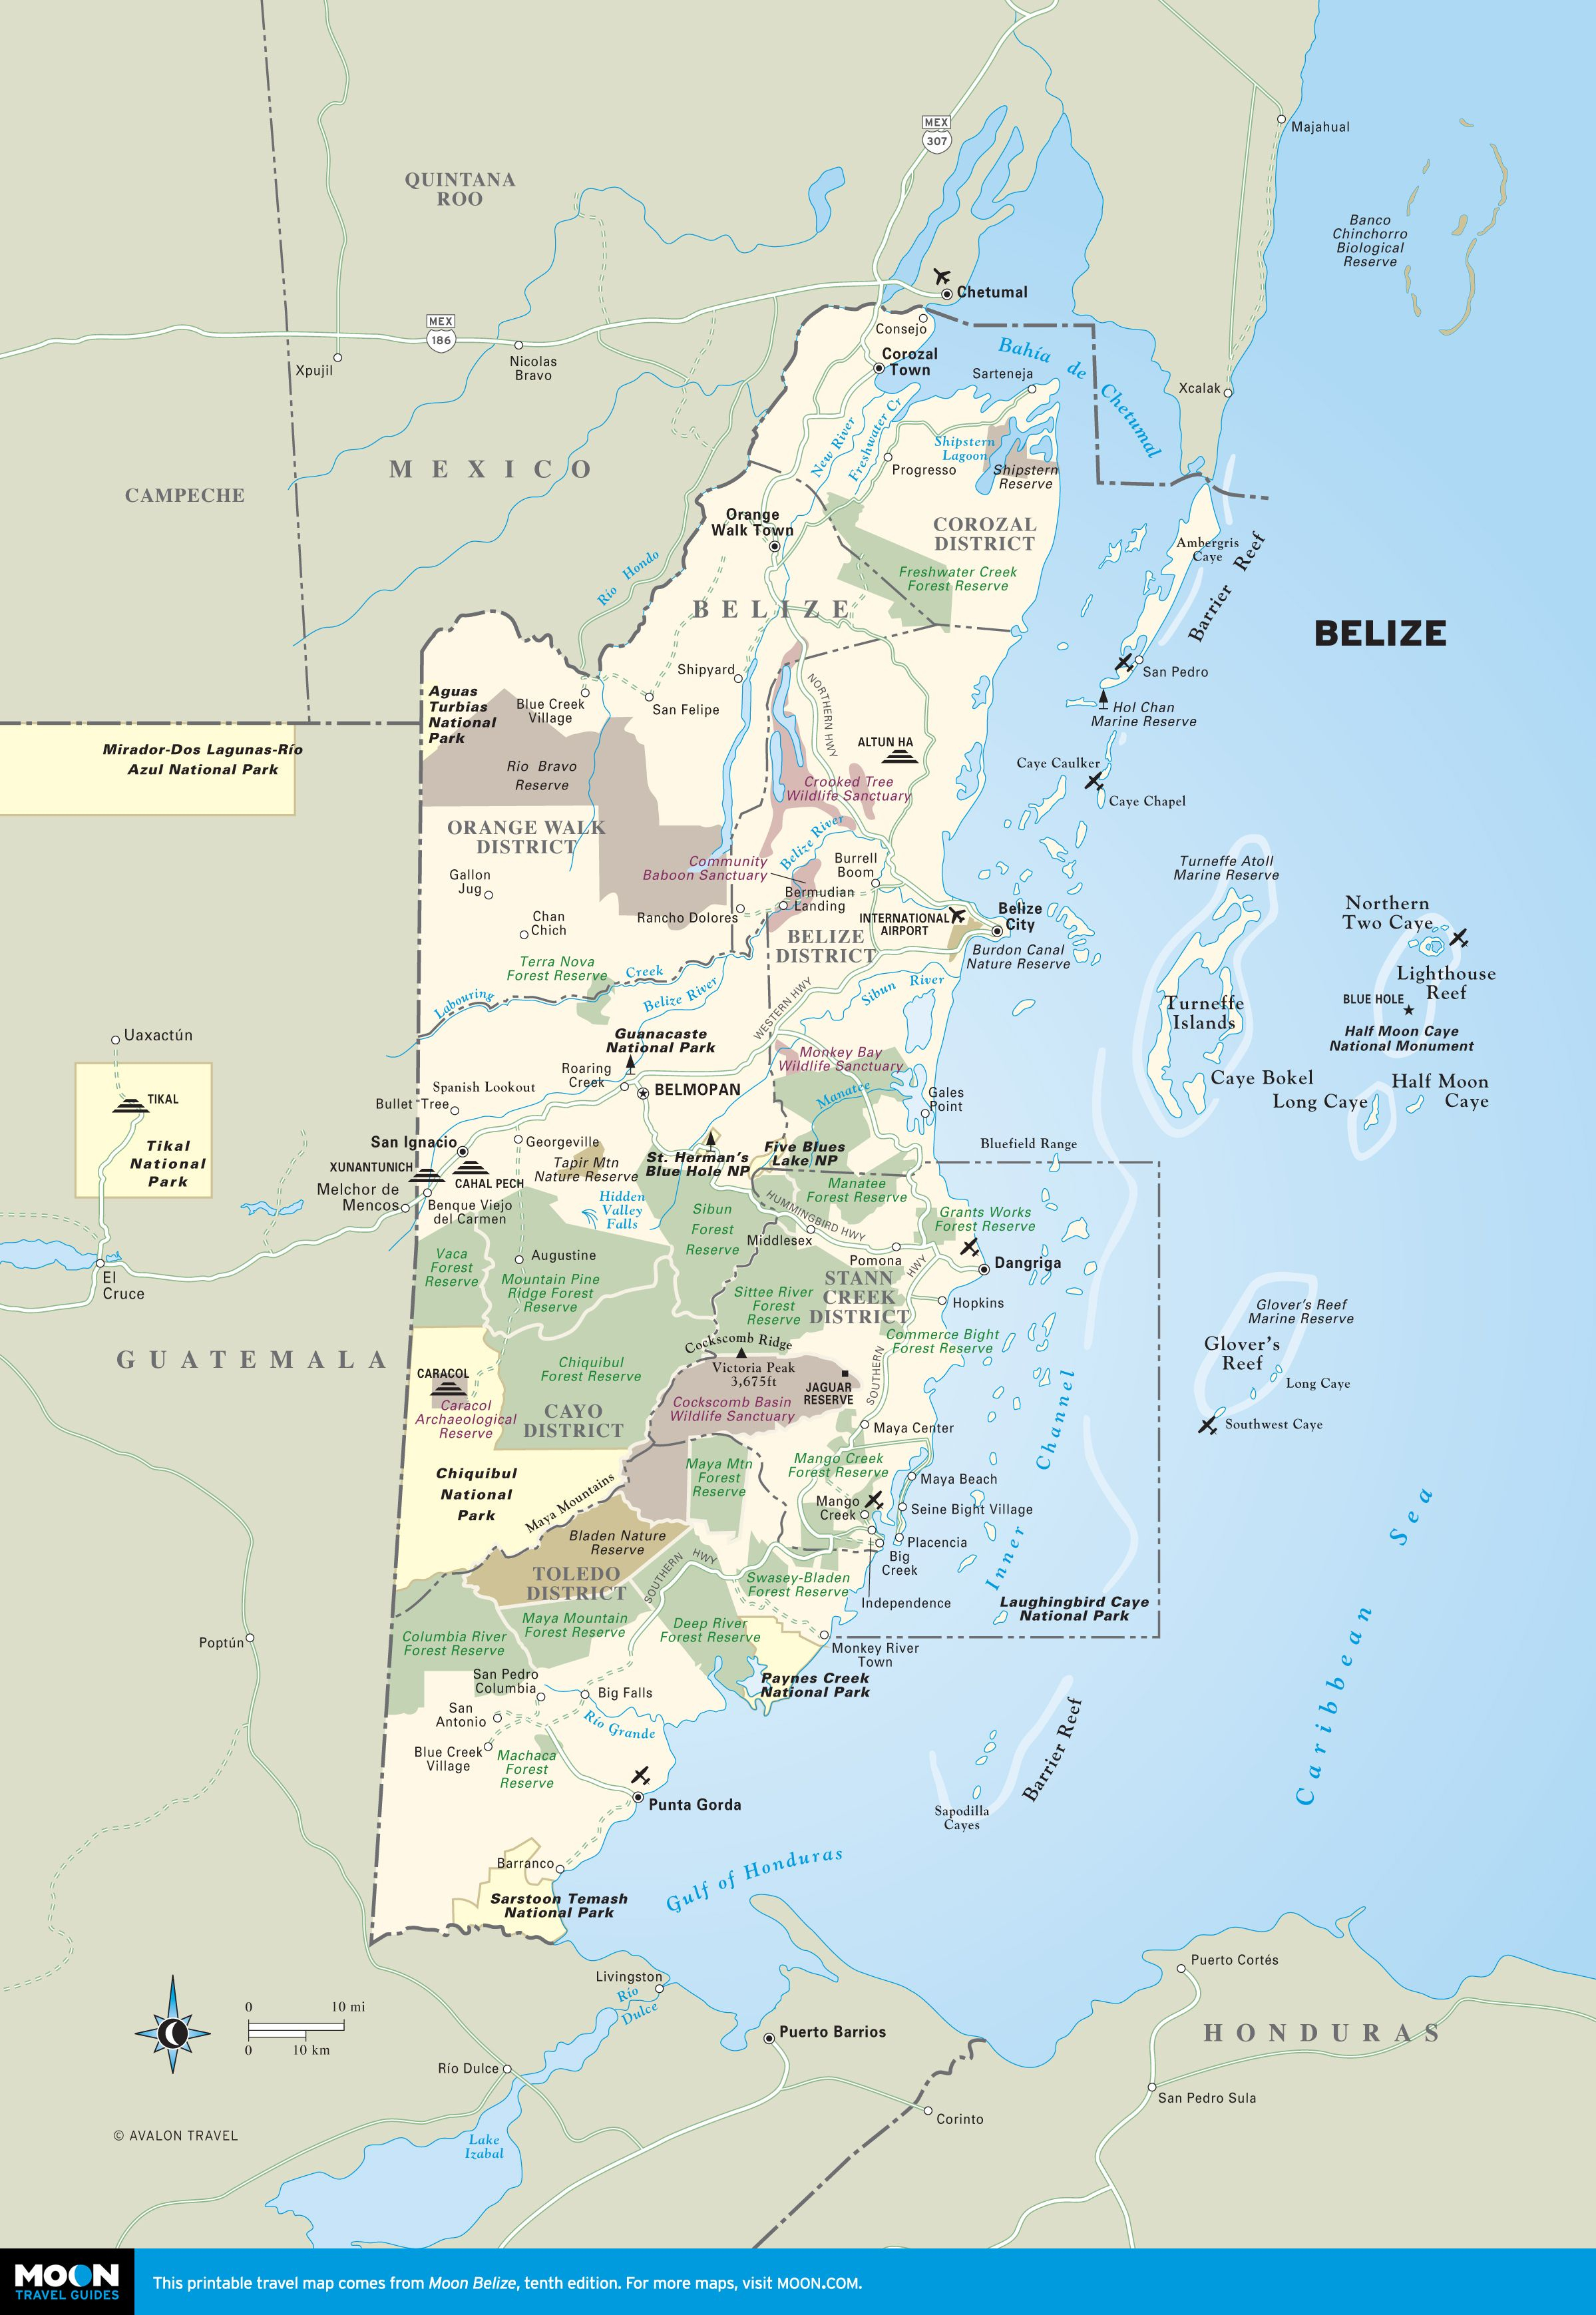 Printable Travel Maps Of Belize | Getting Ready For Retirement | Map - Free Printable Travel Maps